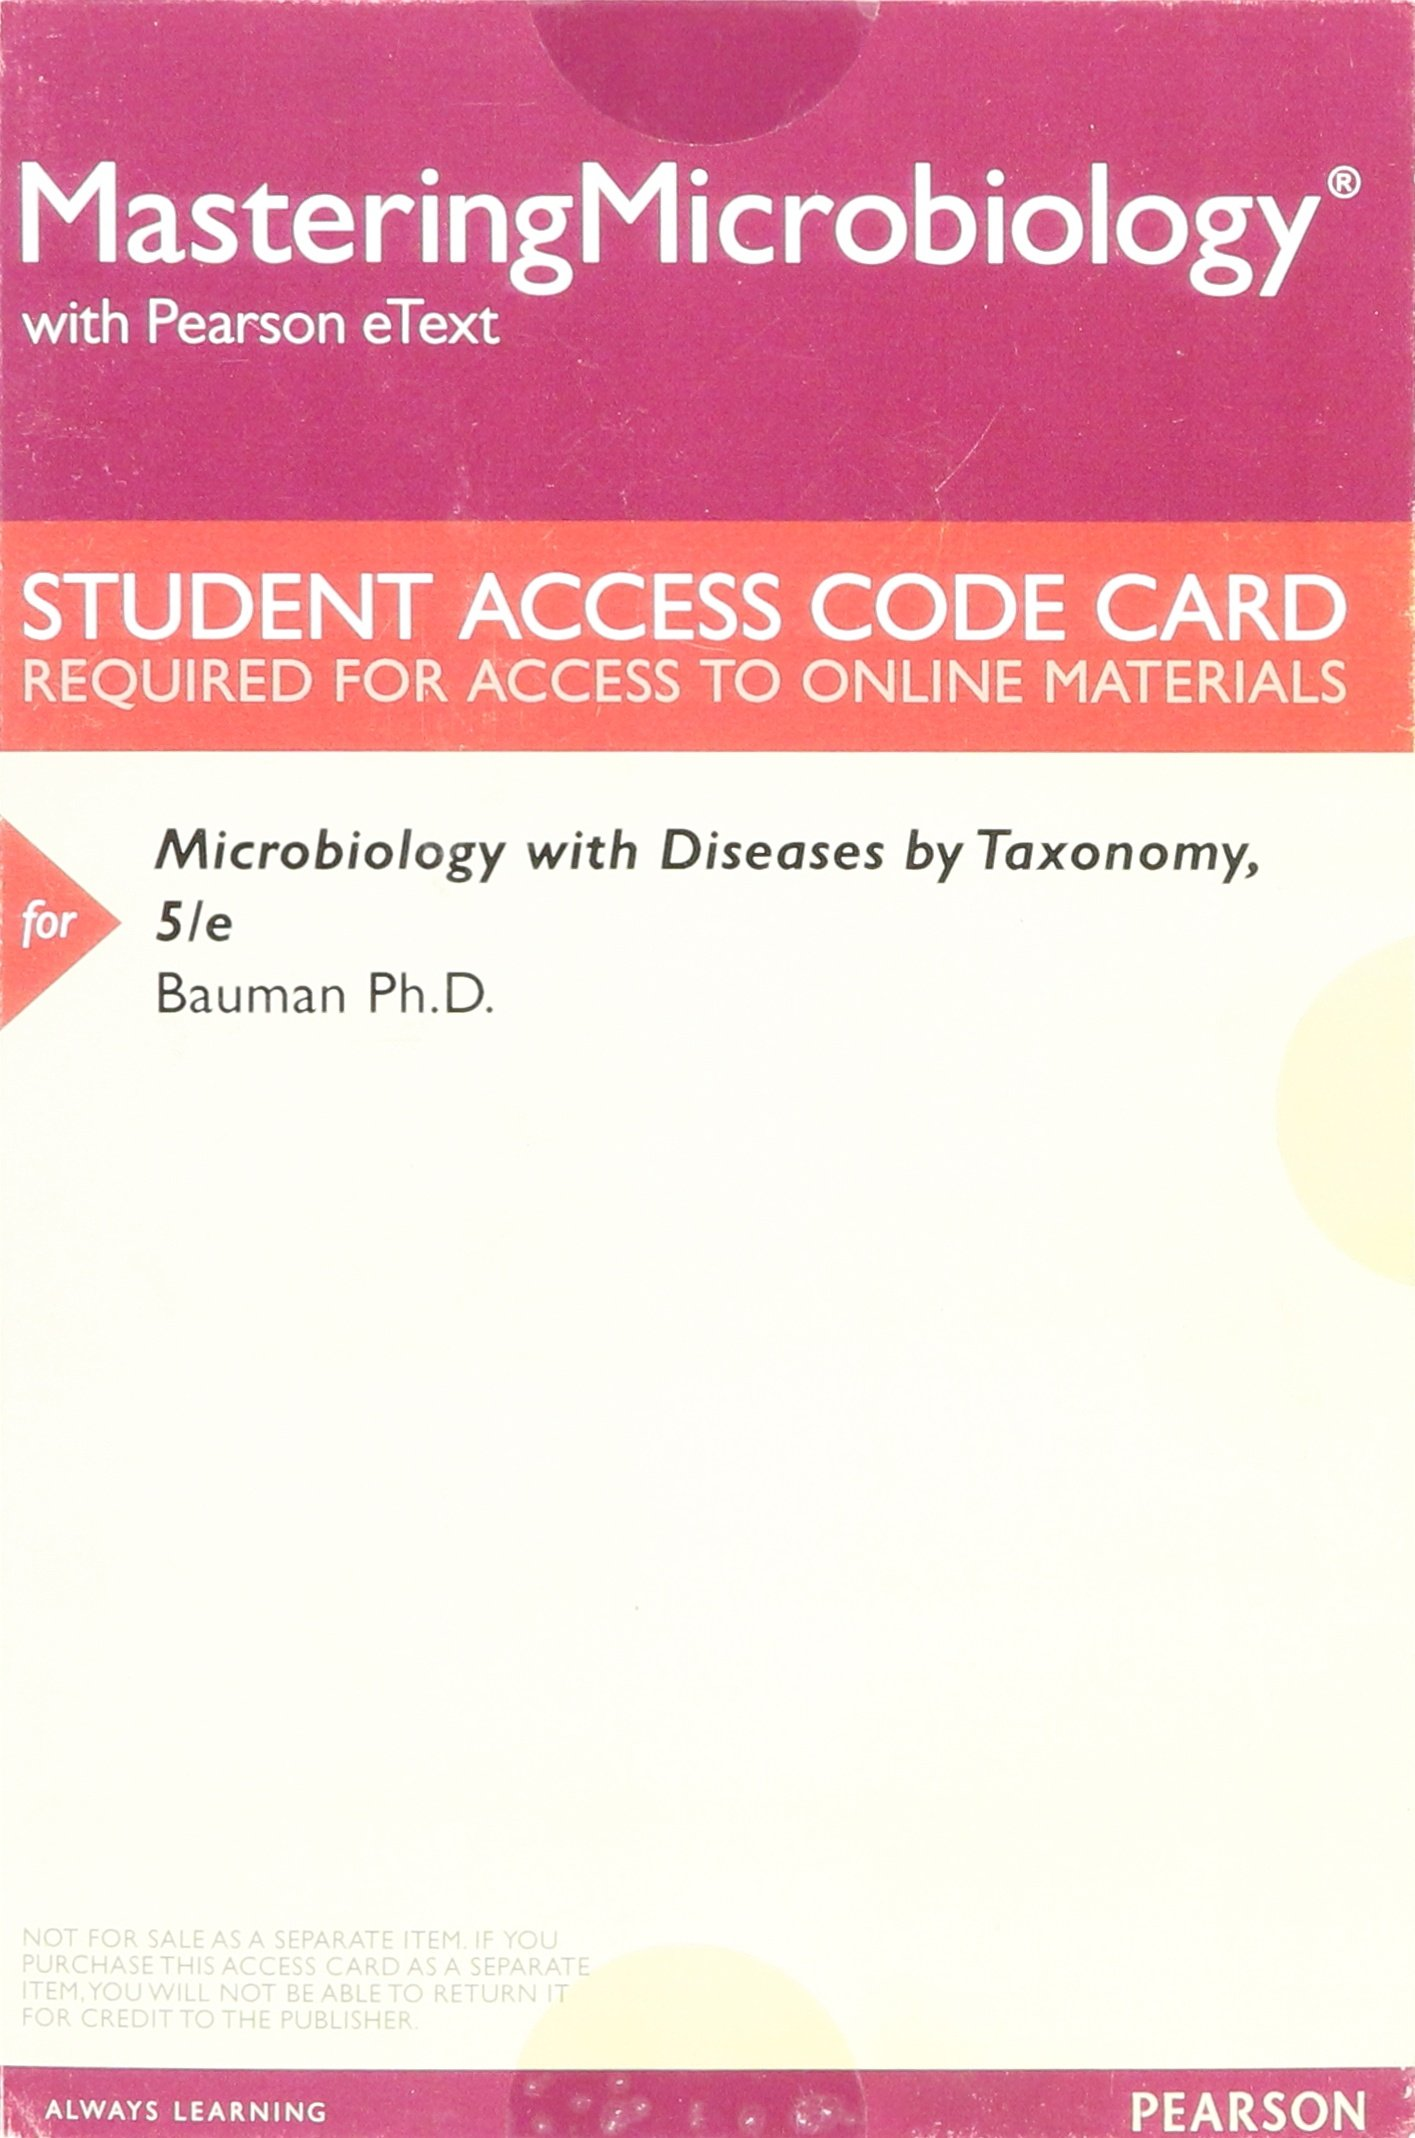 Download MasteringMicrobiology with Pearson eText -- ValuePack Access Card -- for Microbiology with Diseases by Taxonomy ebook